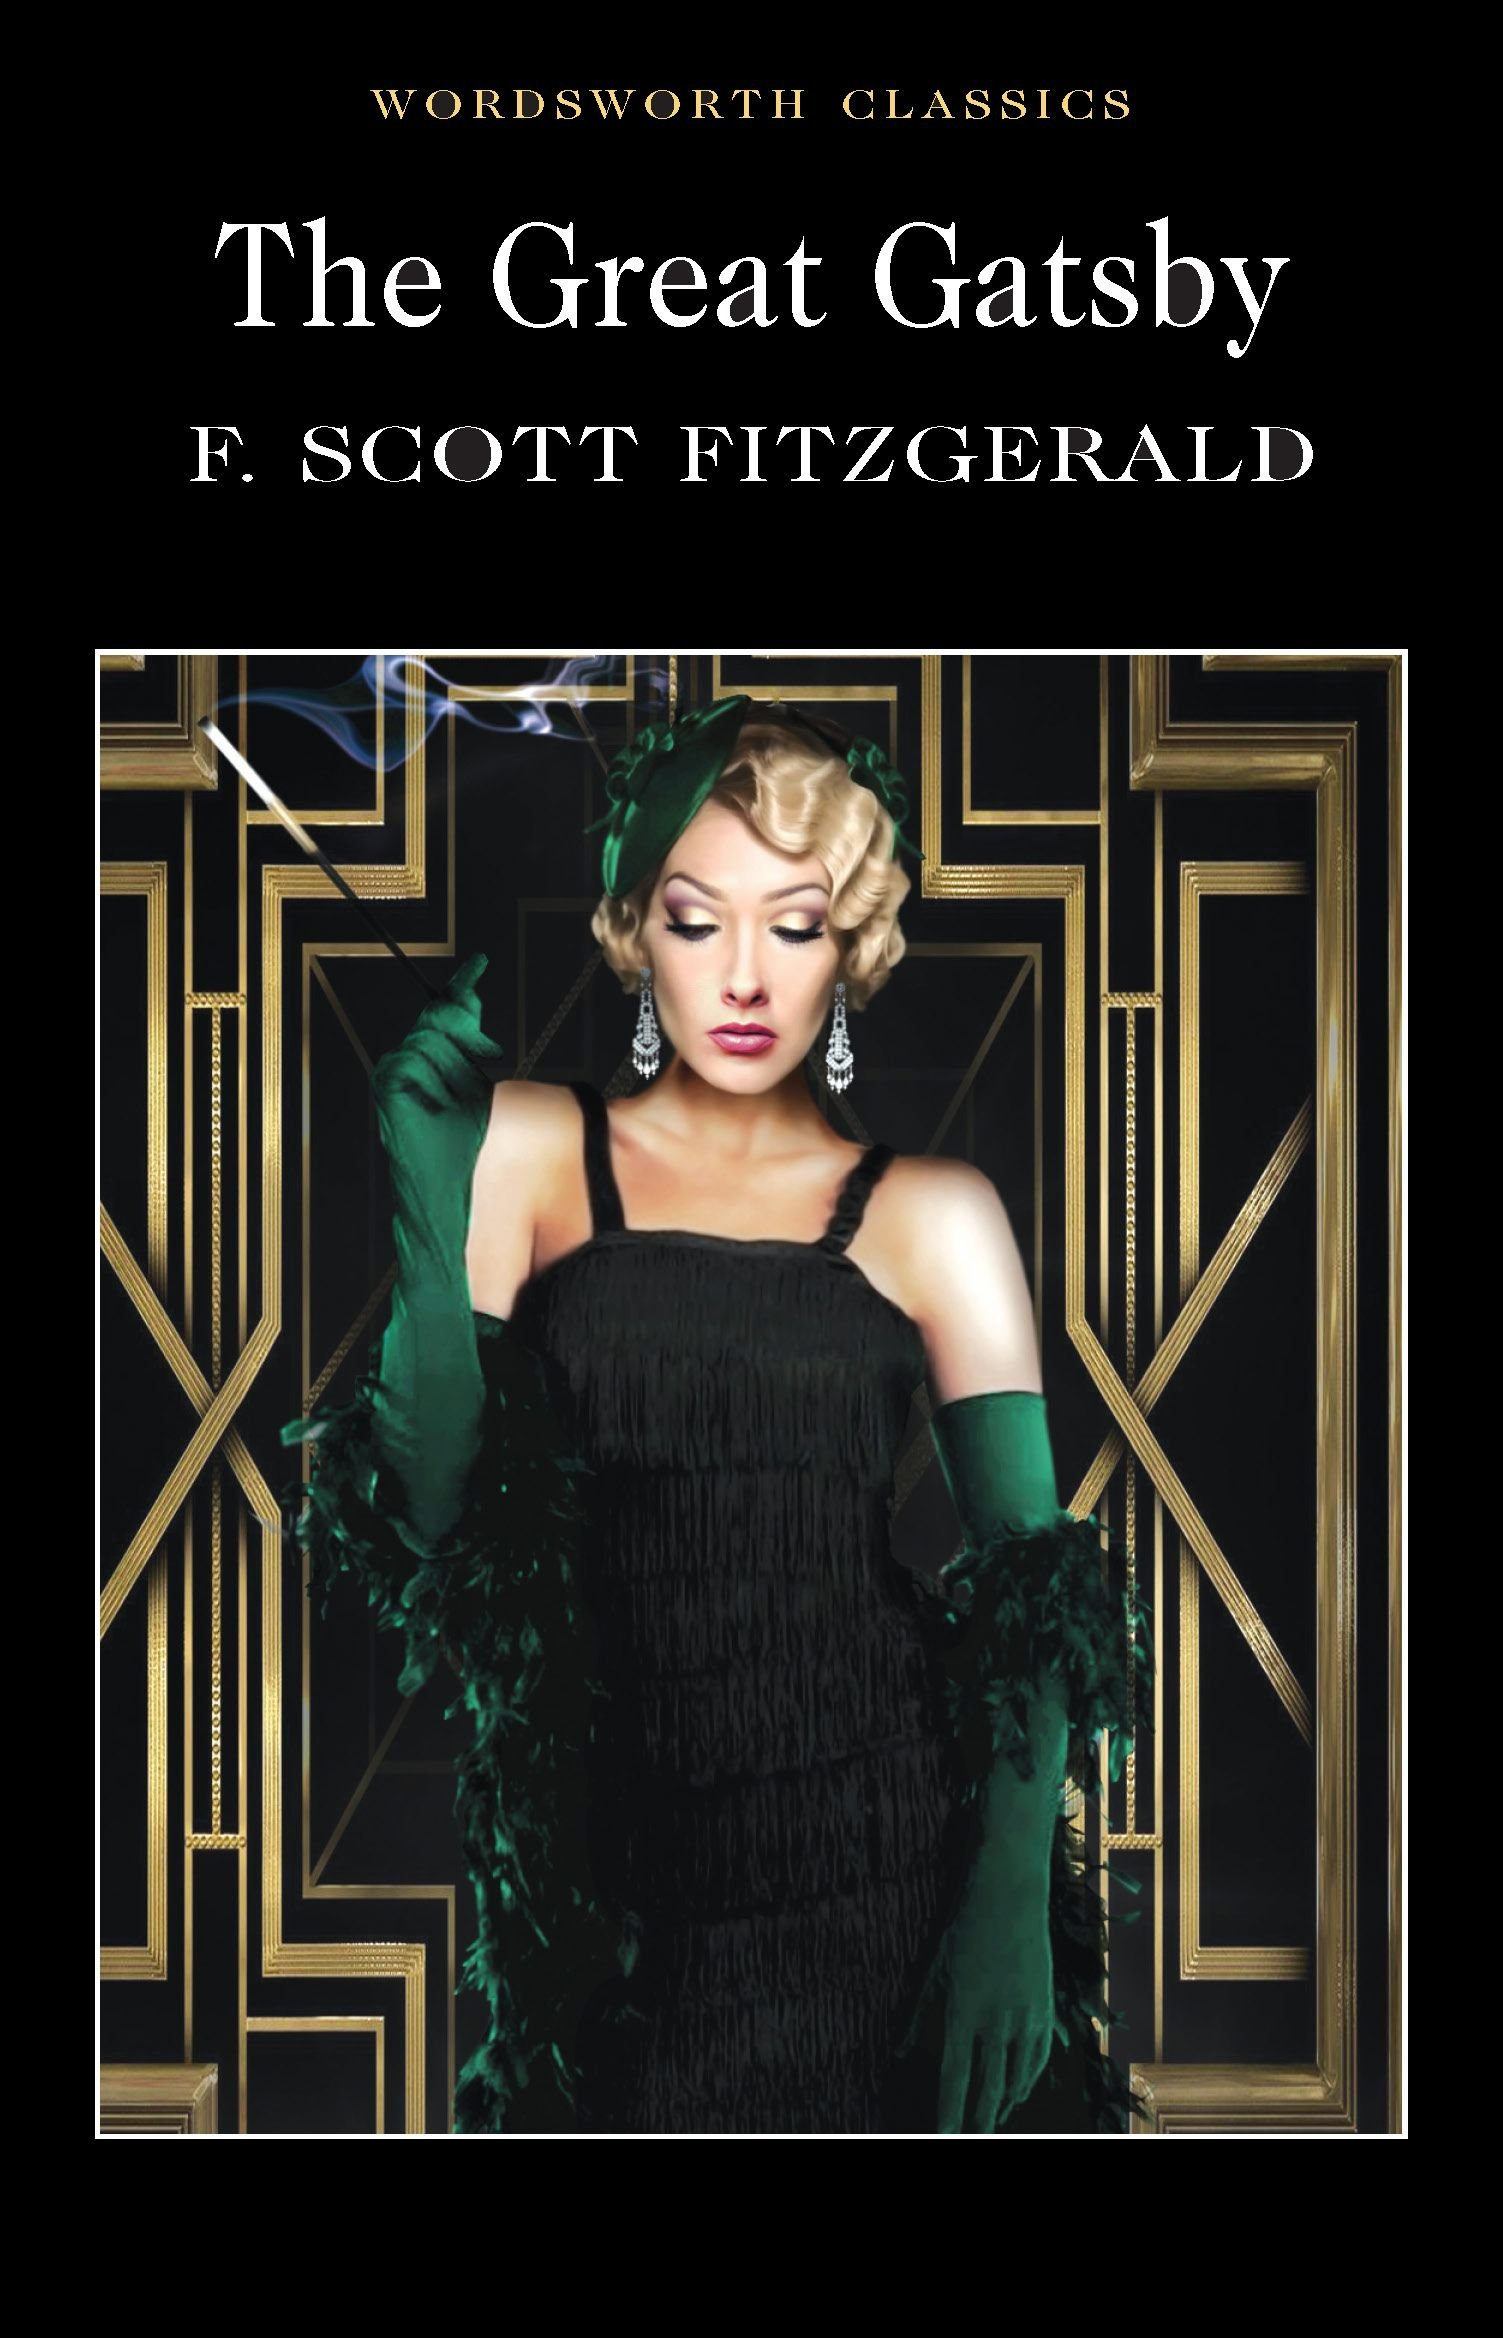 the great gatsby wordsworth classics co uk f scott the great gatsby wordsworth classics co uk f scott fitzgerald guy reynolds dr keith carabine 9781853260414 books